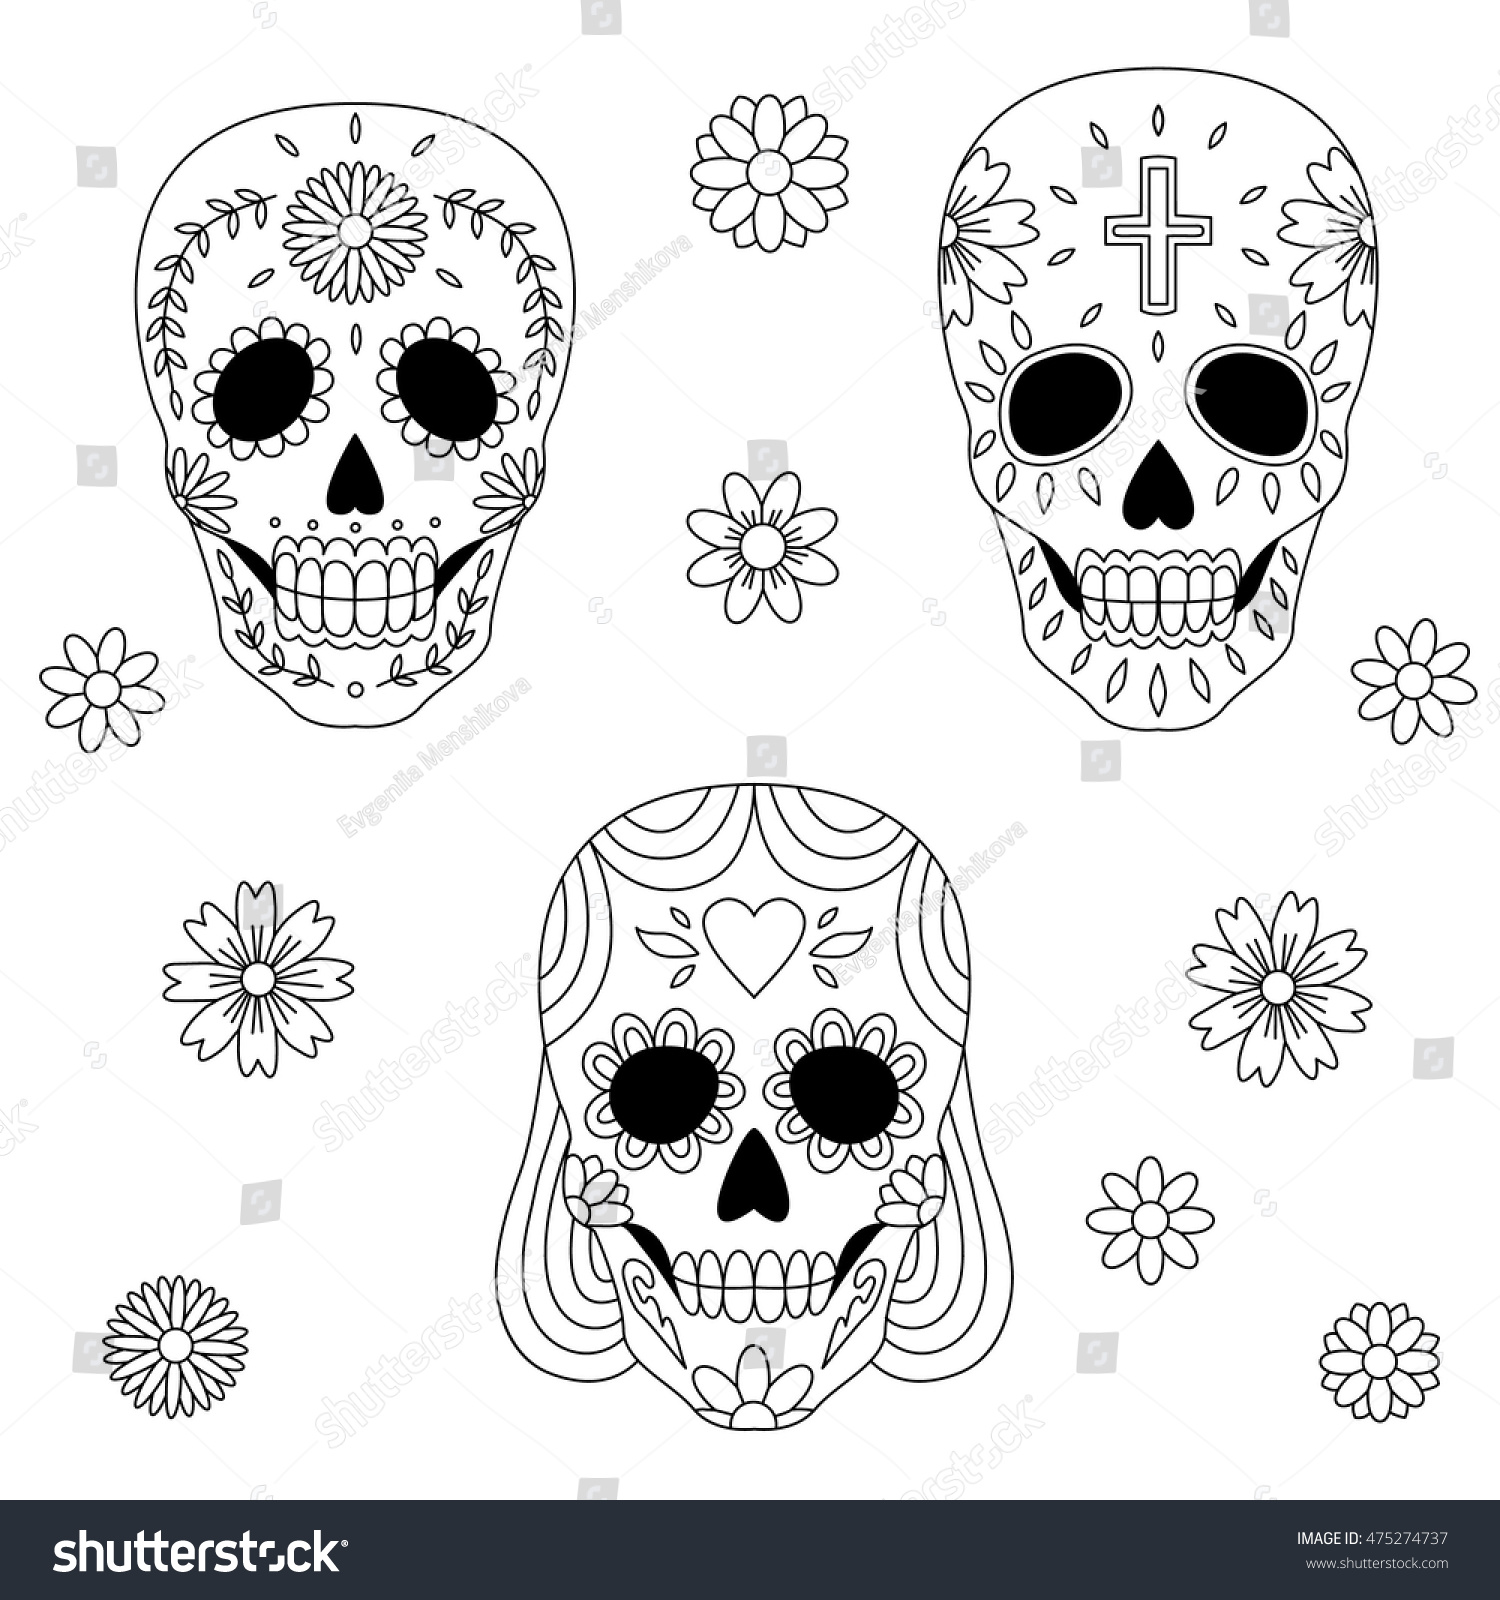 Vector Illustration Sugar Skull Mexican Symbol Stock Vector (Royalty ...